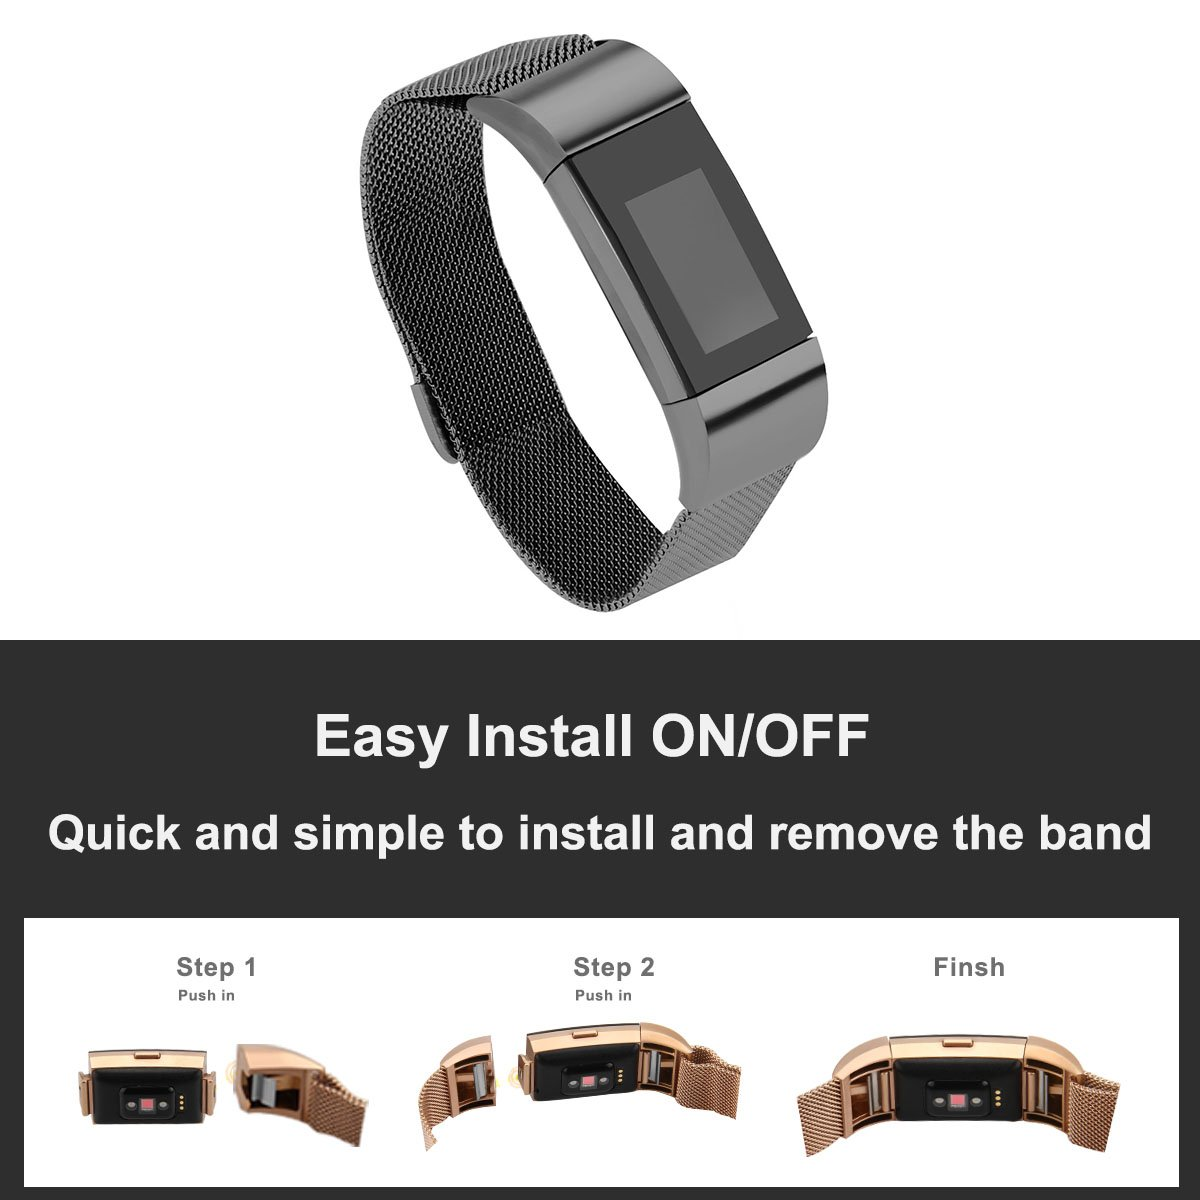 Autogo Black Stainless Steel Magnetic Closure Replacement for Charge 2,Fit Large Wrist 6.3-8.7 Fit Large Wrist 6.3-8.7